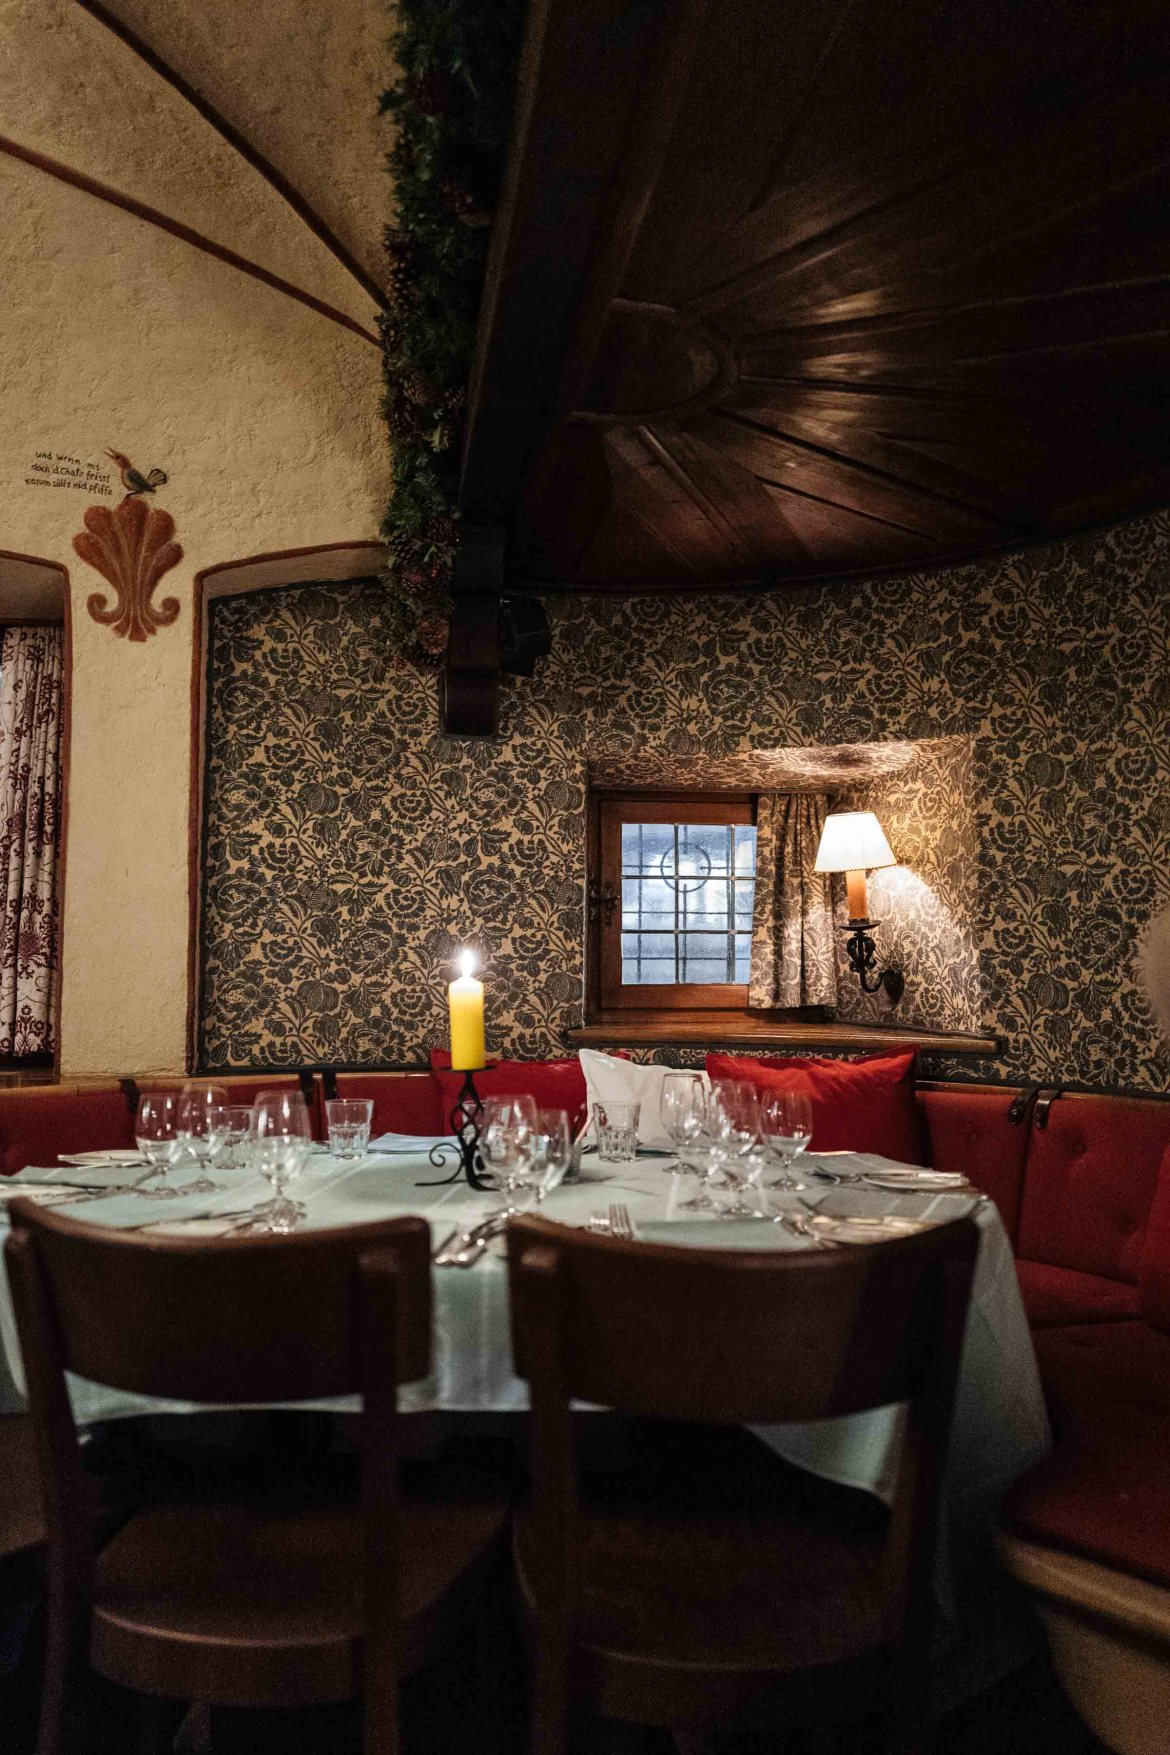 Have dinner in the dining room at this Klosters Hotel or have a set table in the bar downstairs at the historic chesa grischuna of Klosters at night near Davos | The Taste Edit #travel #switzerland #swiss #bar #food #tablesetting